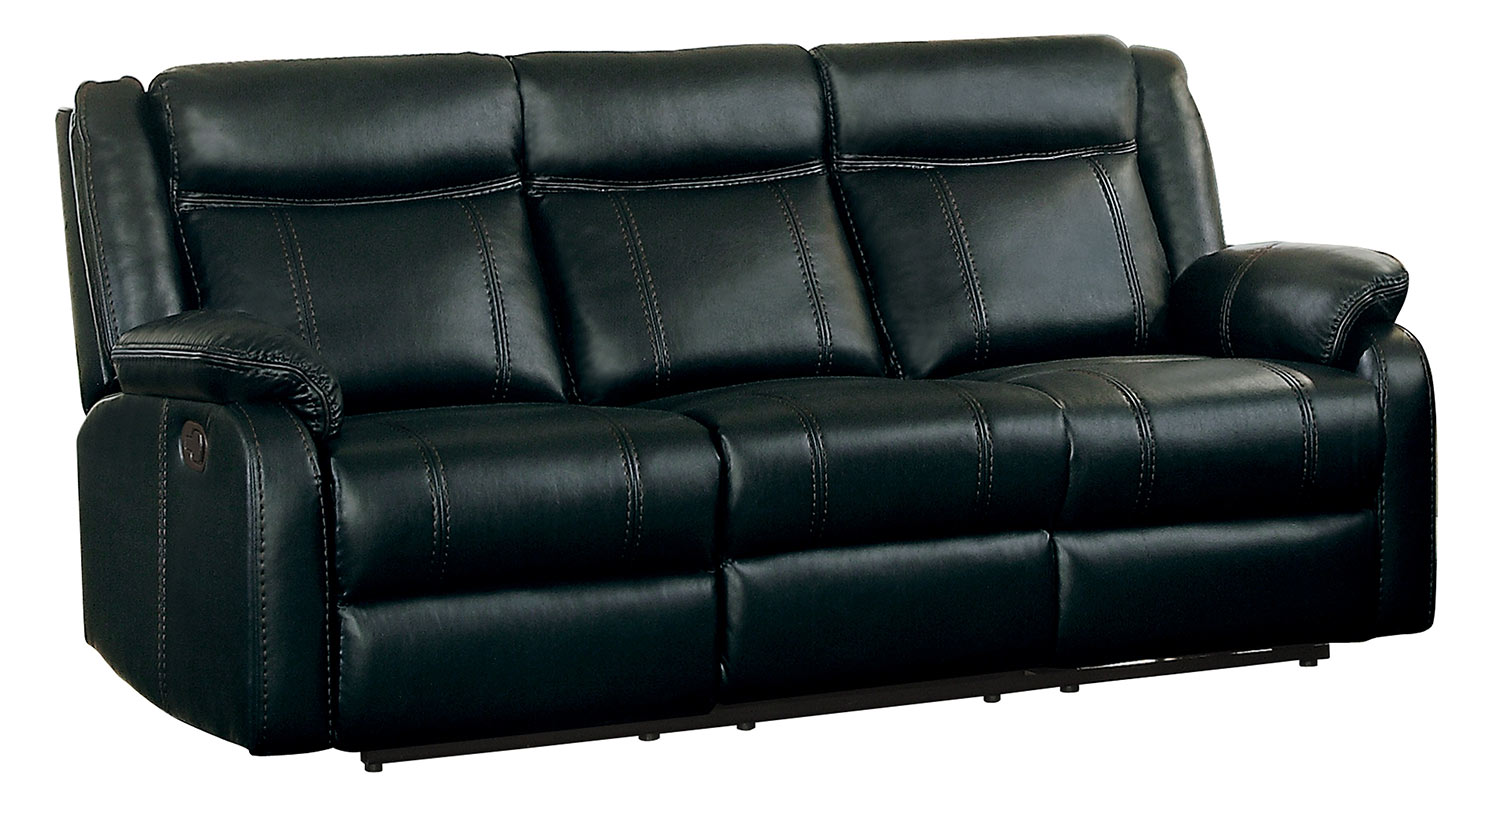 Homelegance Jude Double Reclining Sofa With Drop Down Table Black